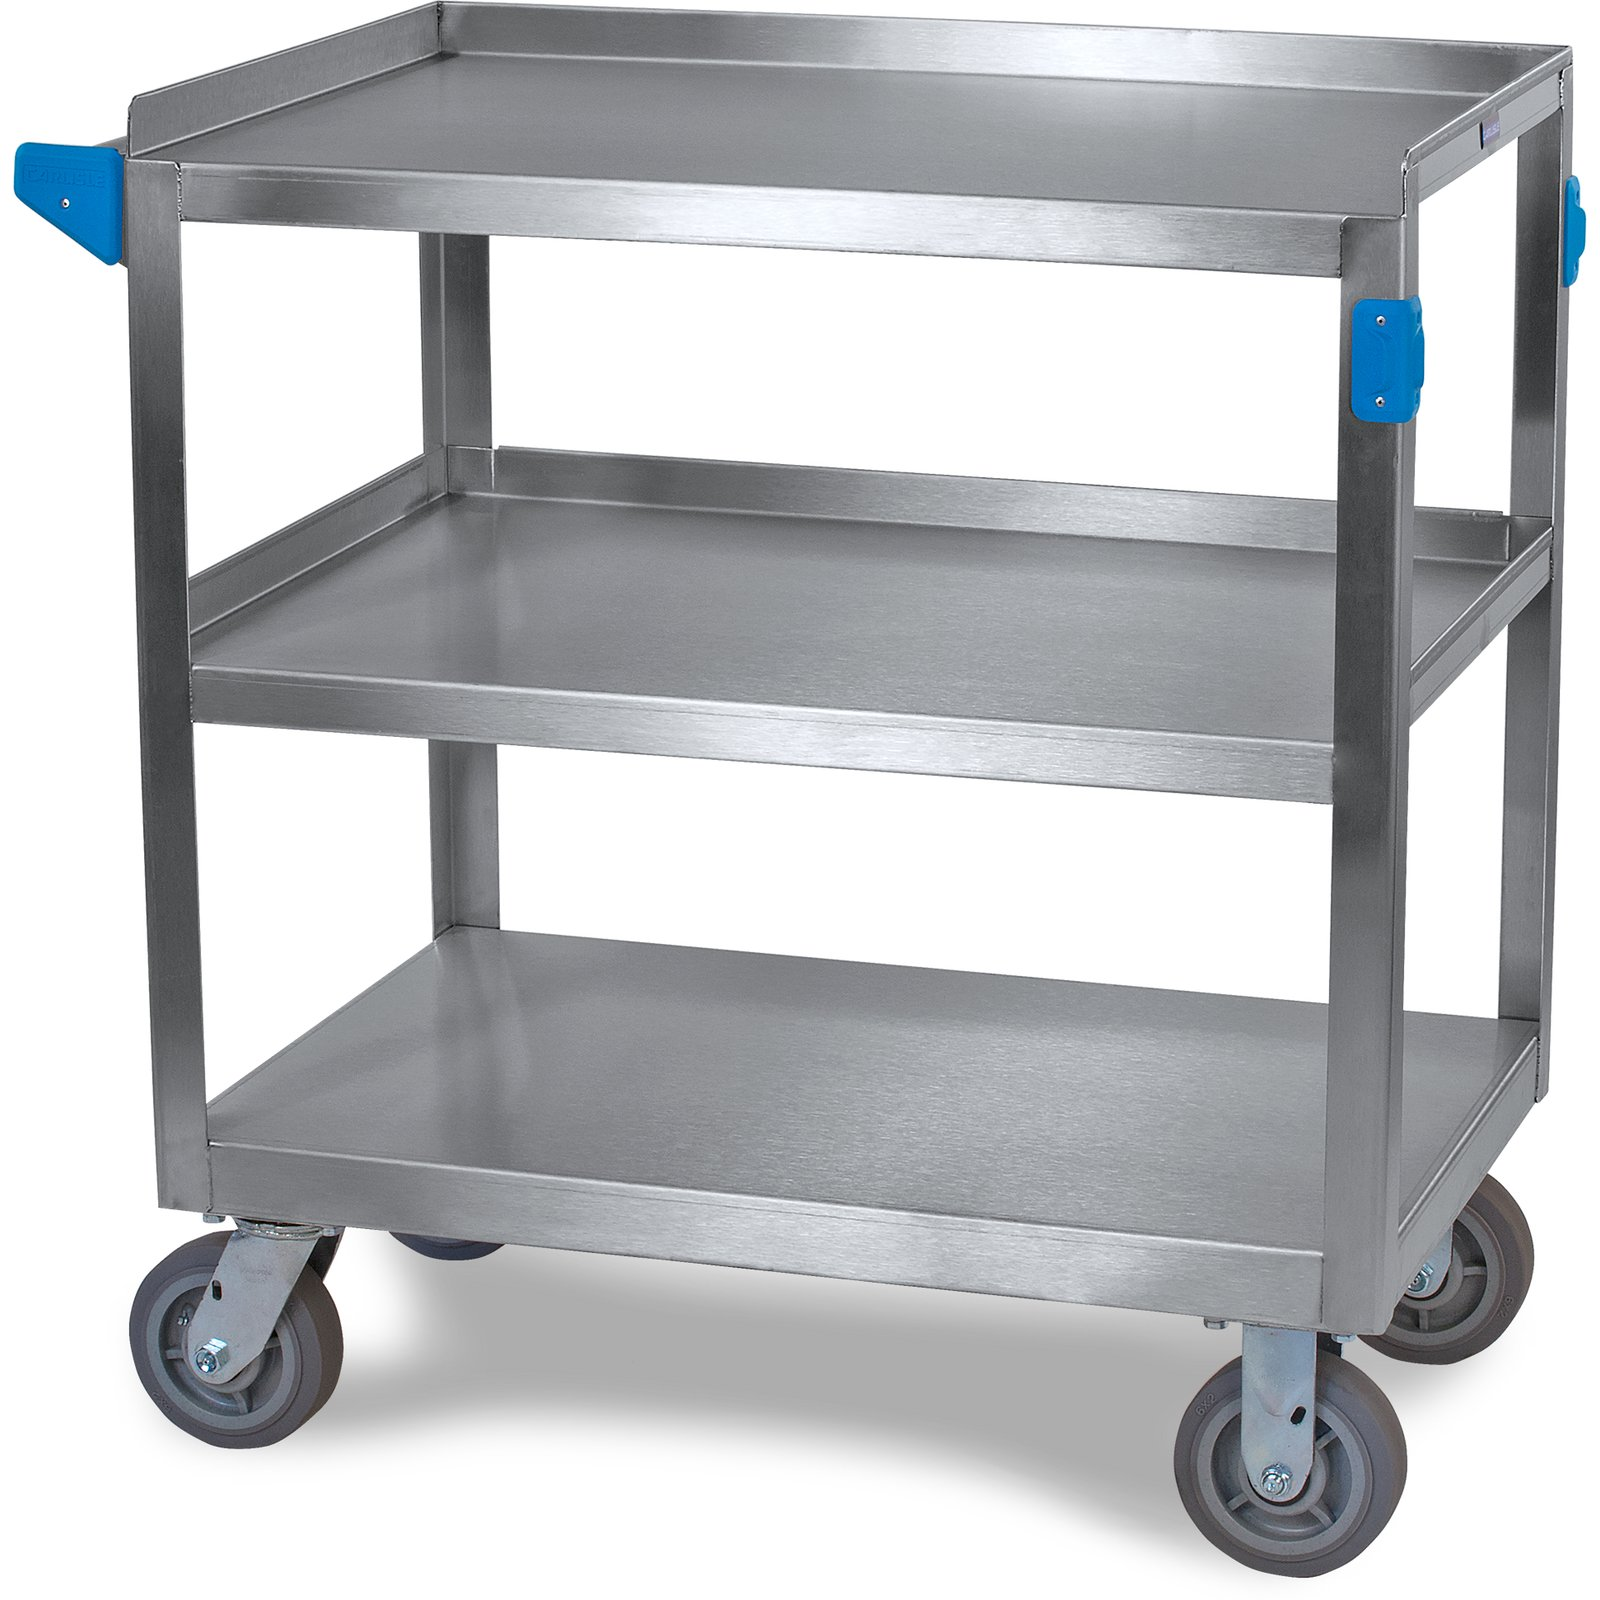 Uc7032133 Stainless Steel 3 Shelf Utility Cart 21 X 33 Stainless Steel Carlisle Foodservice Products